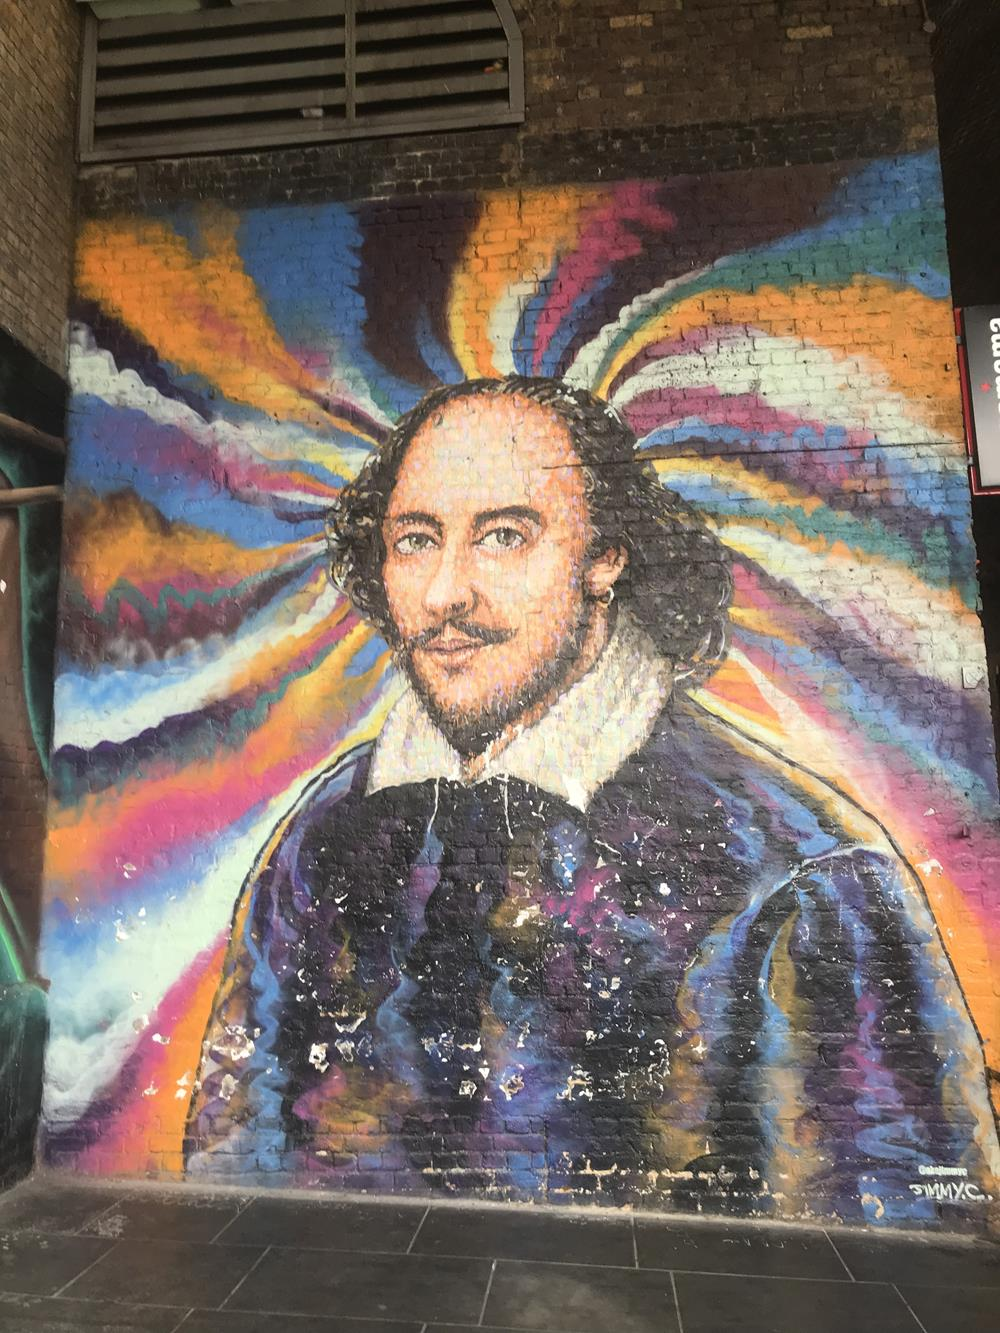 Portrait of William Shakespeare by street artist Jimmy C, located on a wall in Clink Street, London